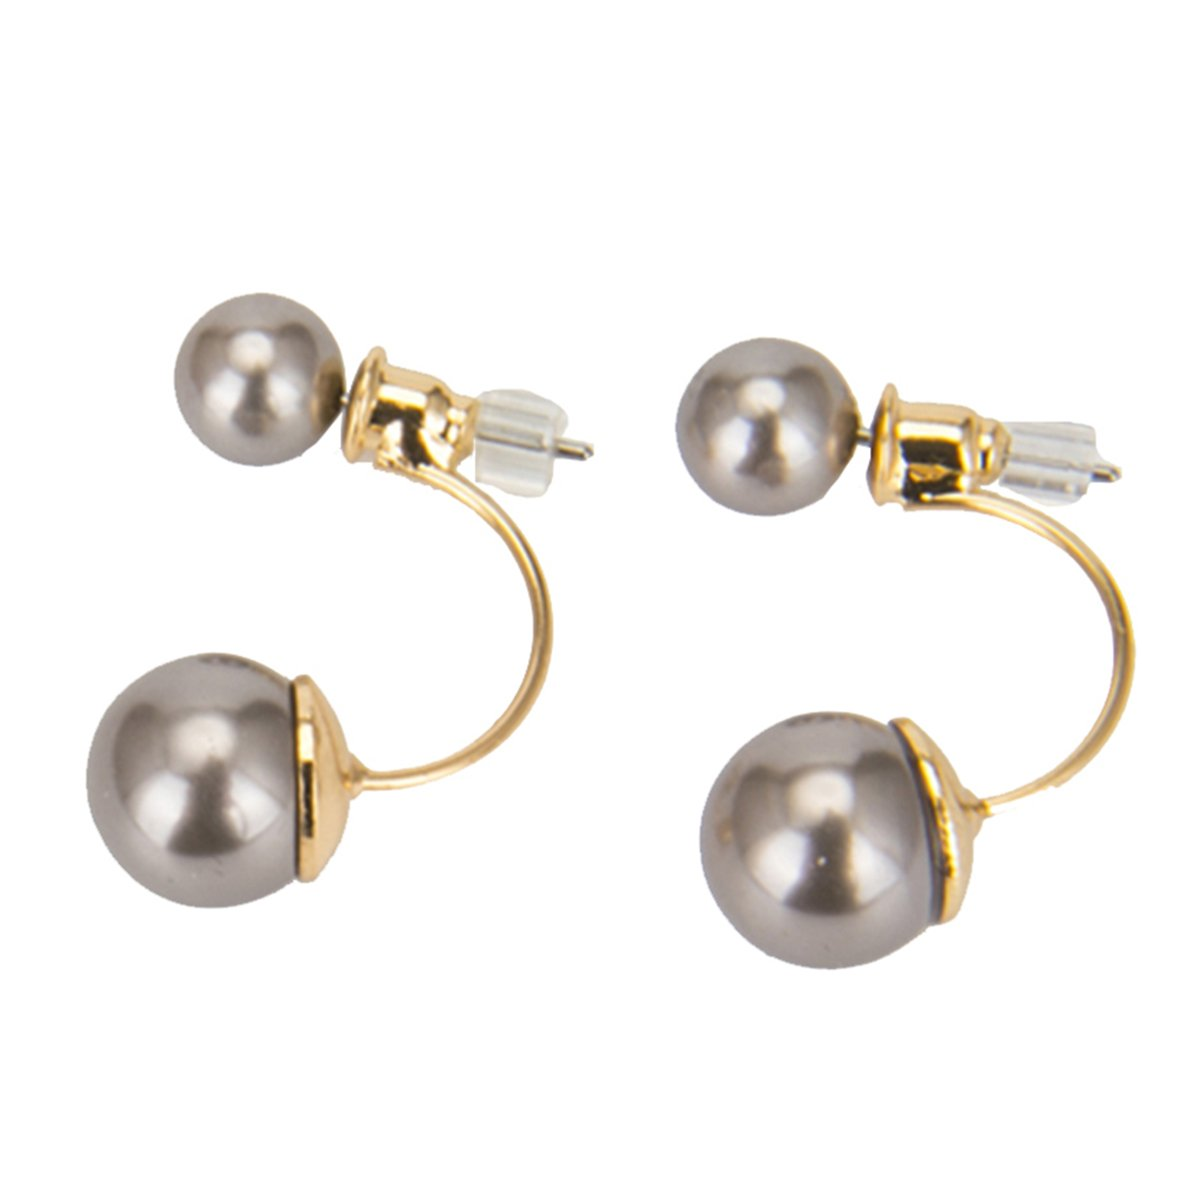 Double Ball Earrings Ear Jacket Pearl Earrings Classic Pearl Stud Earrings Two Grey Round Pearl LIANKONG ER00113